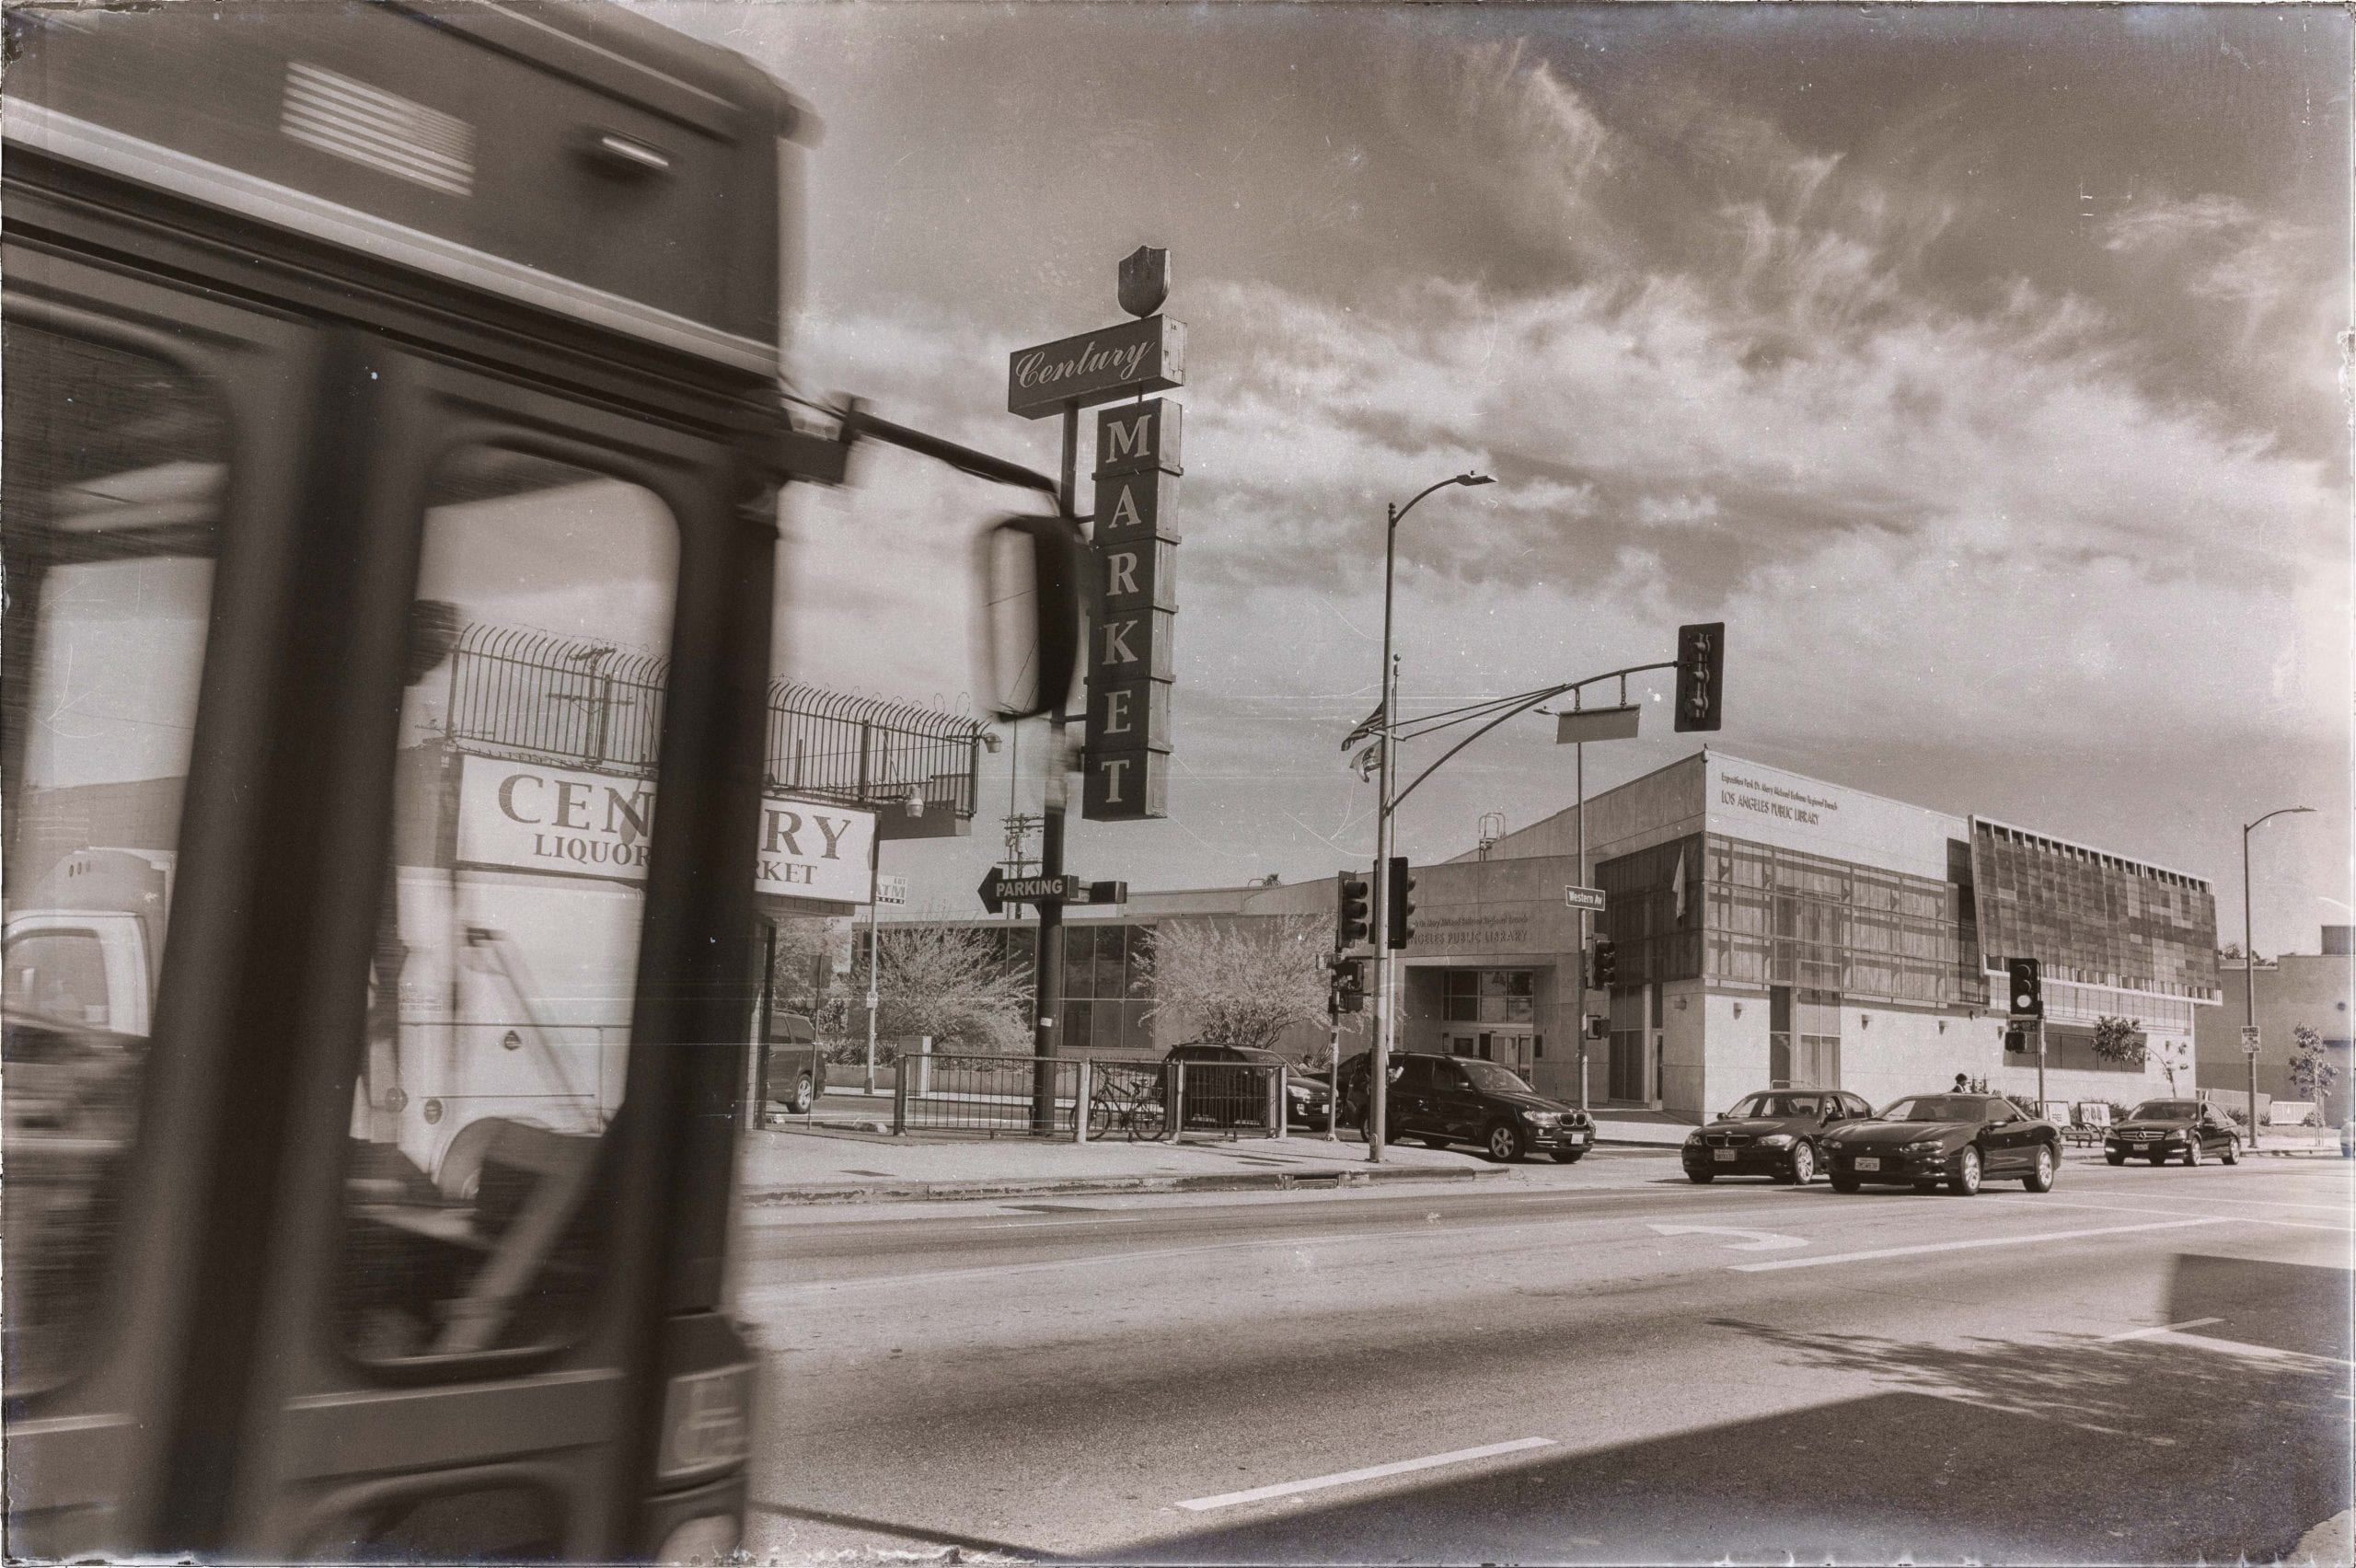 Bus + liquor store + public library on Western Avenue in South Los Angeles. Photo by Steve Hymon.